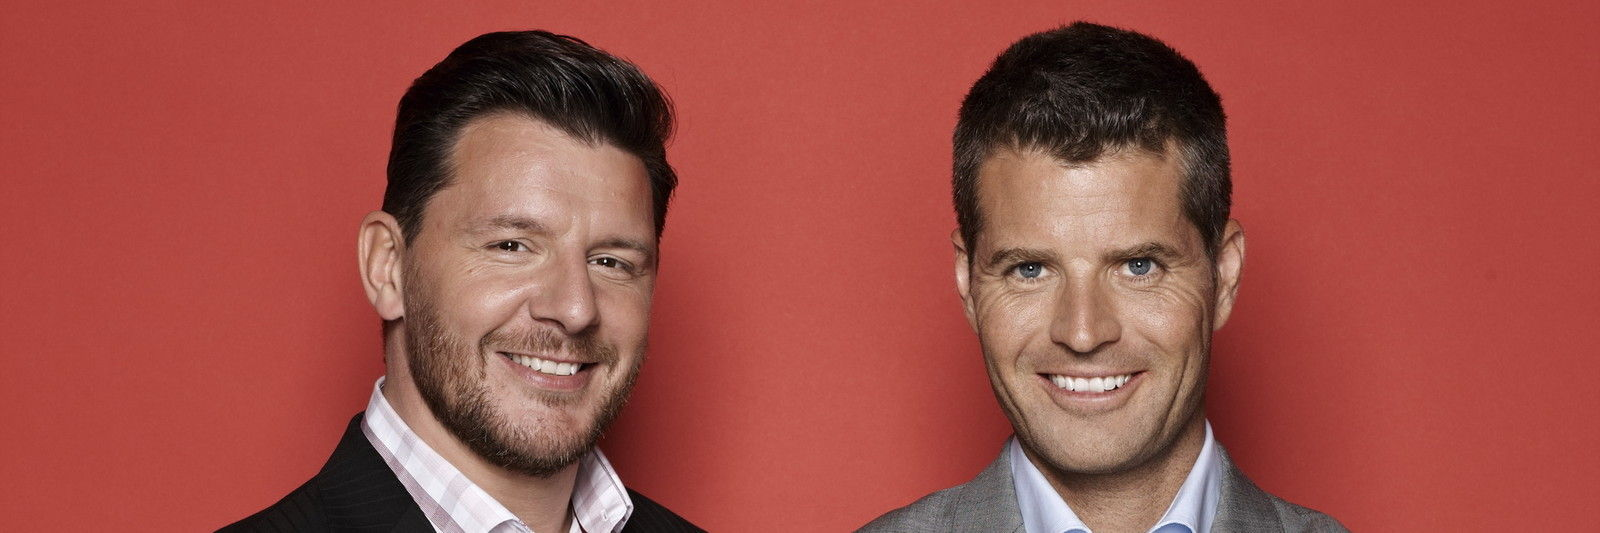 27 my kitchen rules 005 pre